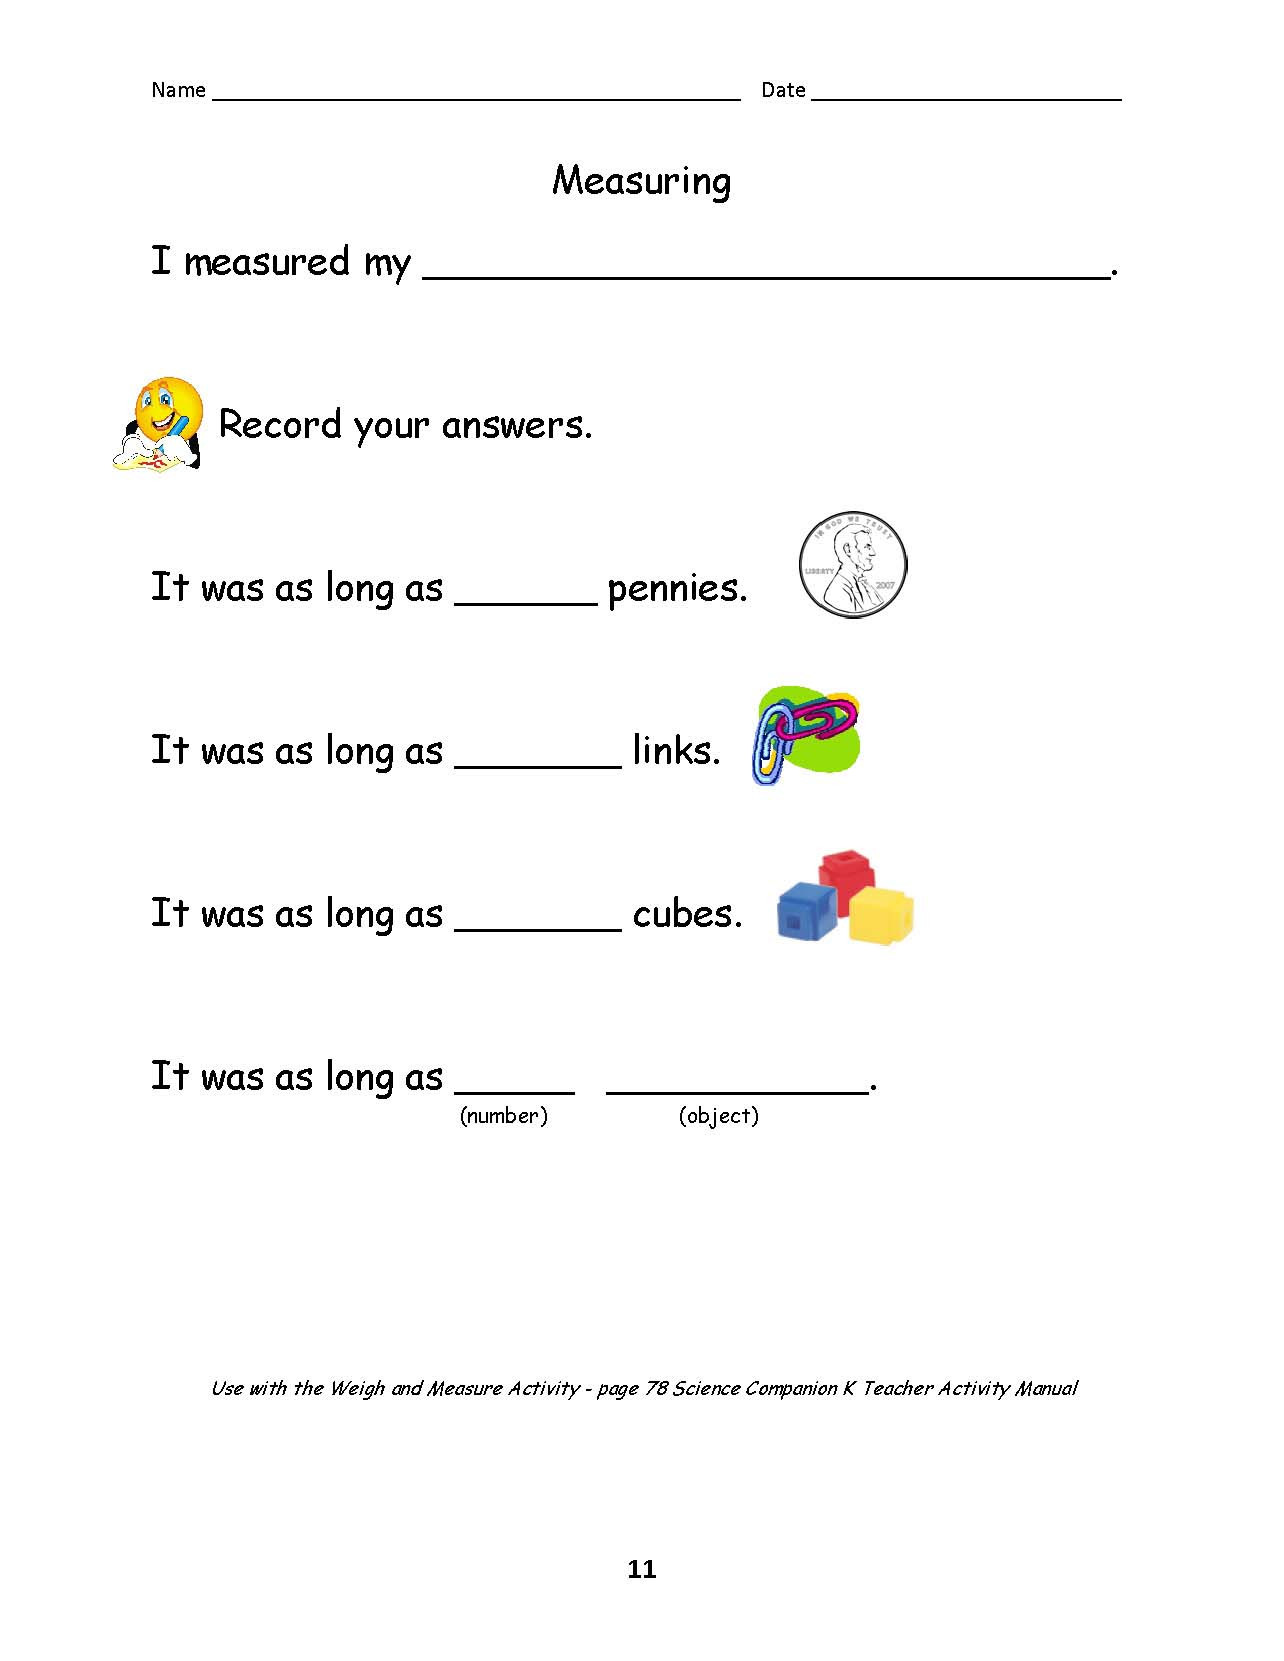 Properties Of Water Worksheet Connections Science and Children Nsta Grade Air Water